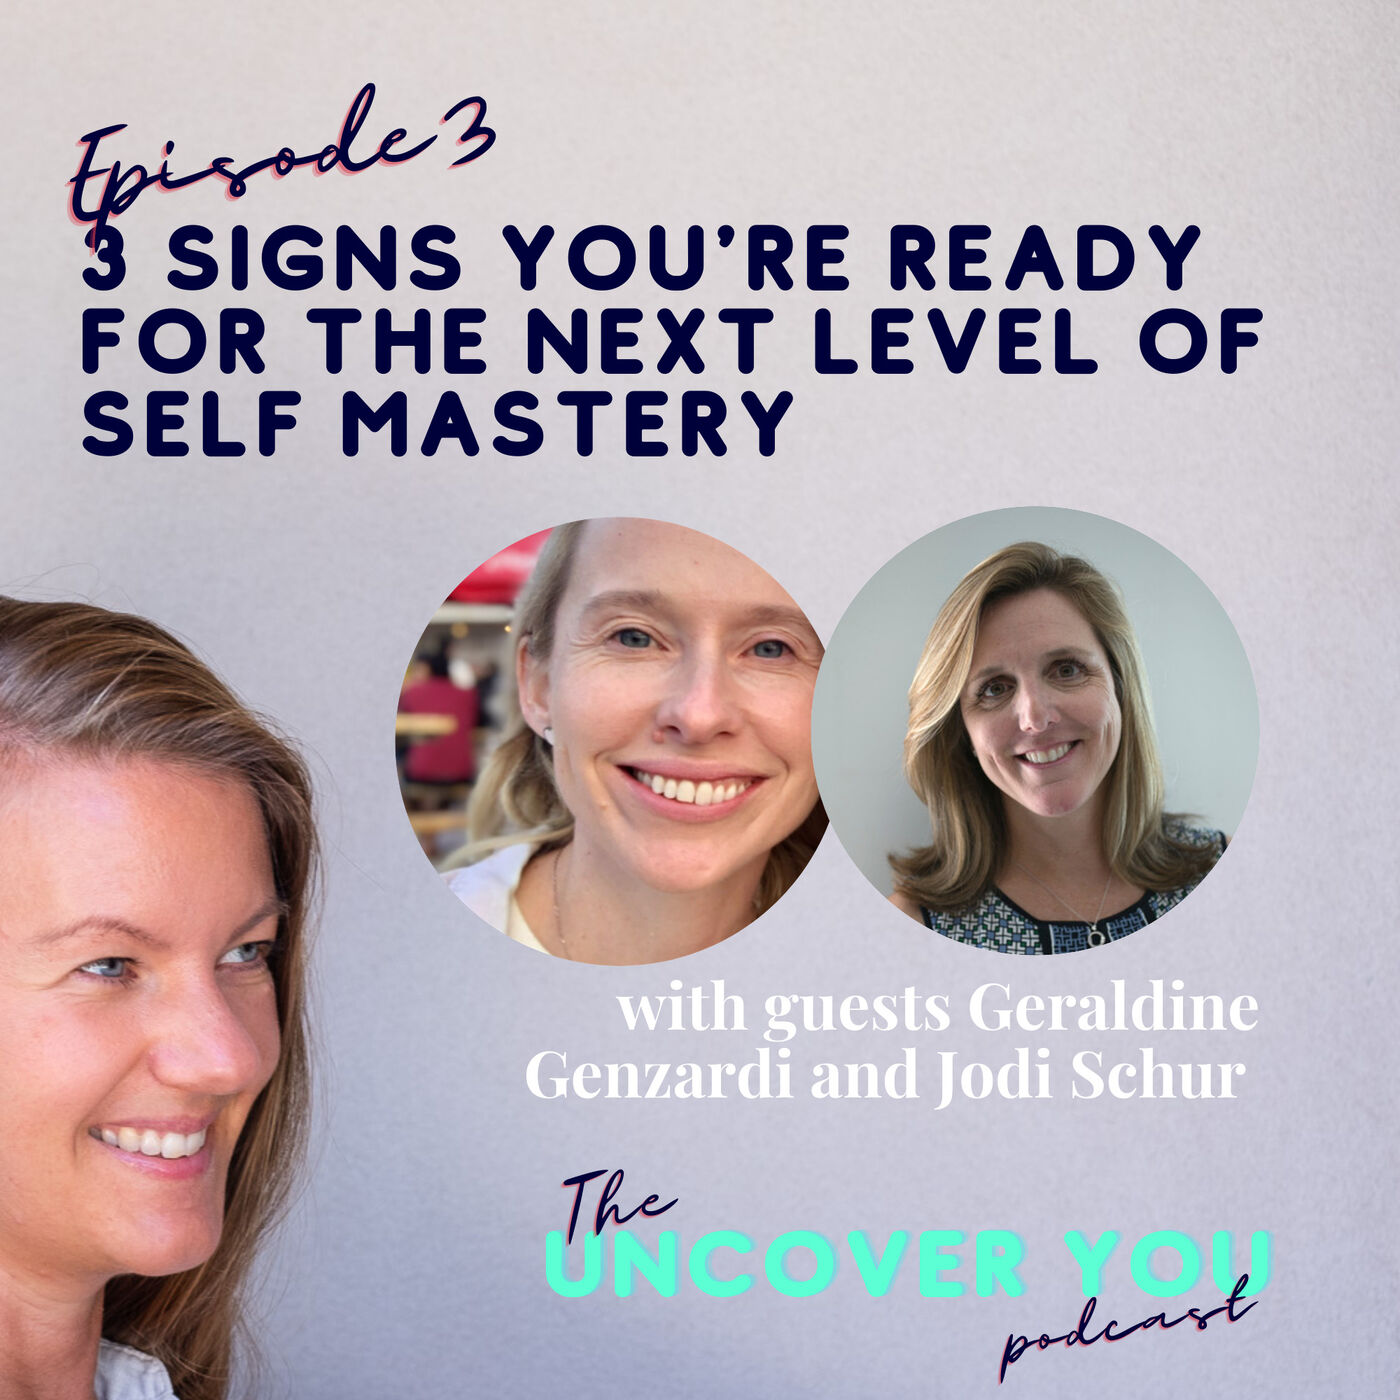 Ep 3: 3 signs you're ready for the next level of self mastery